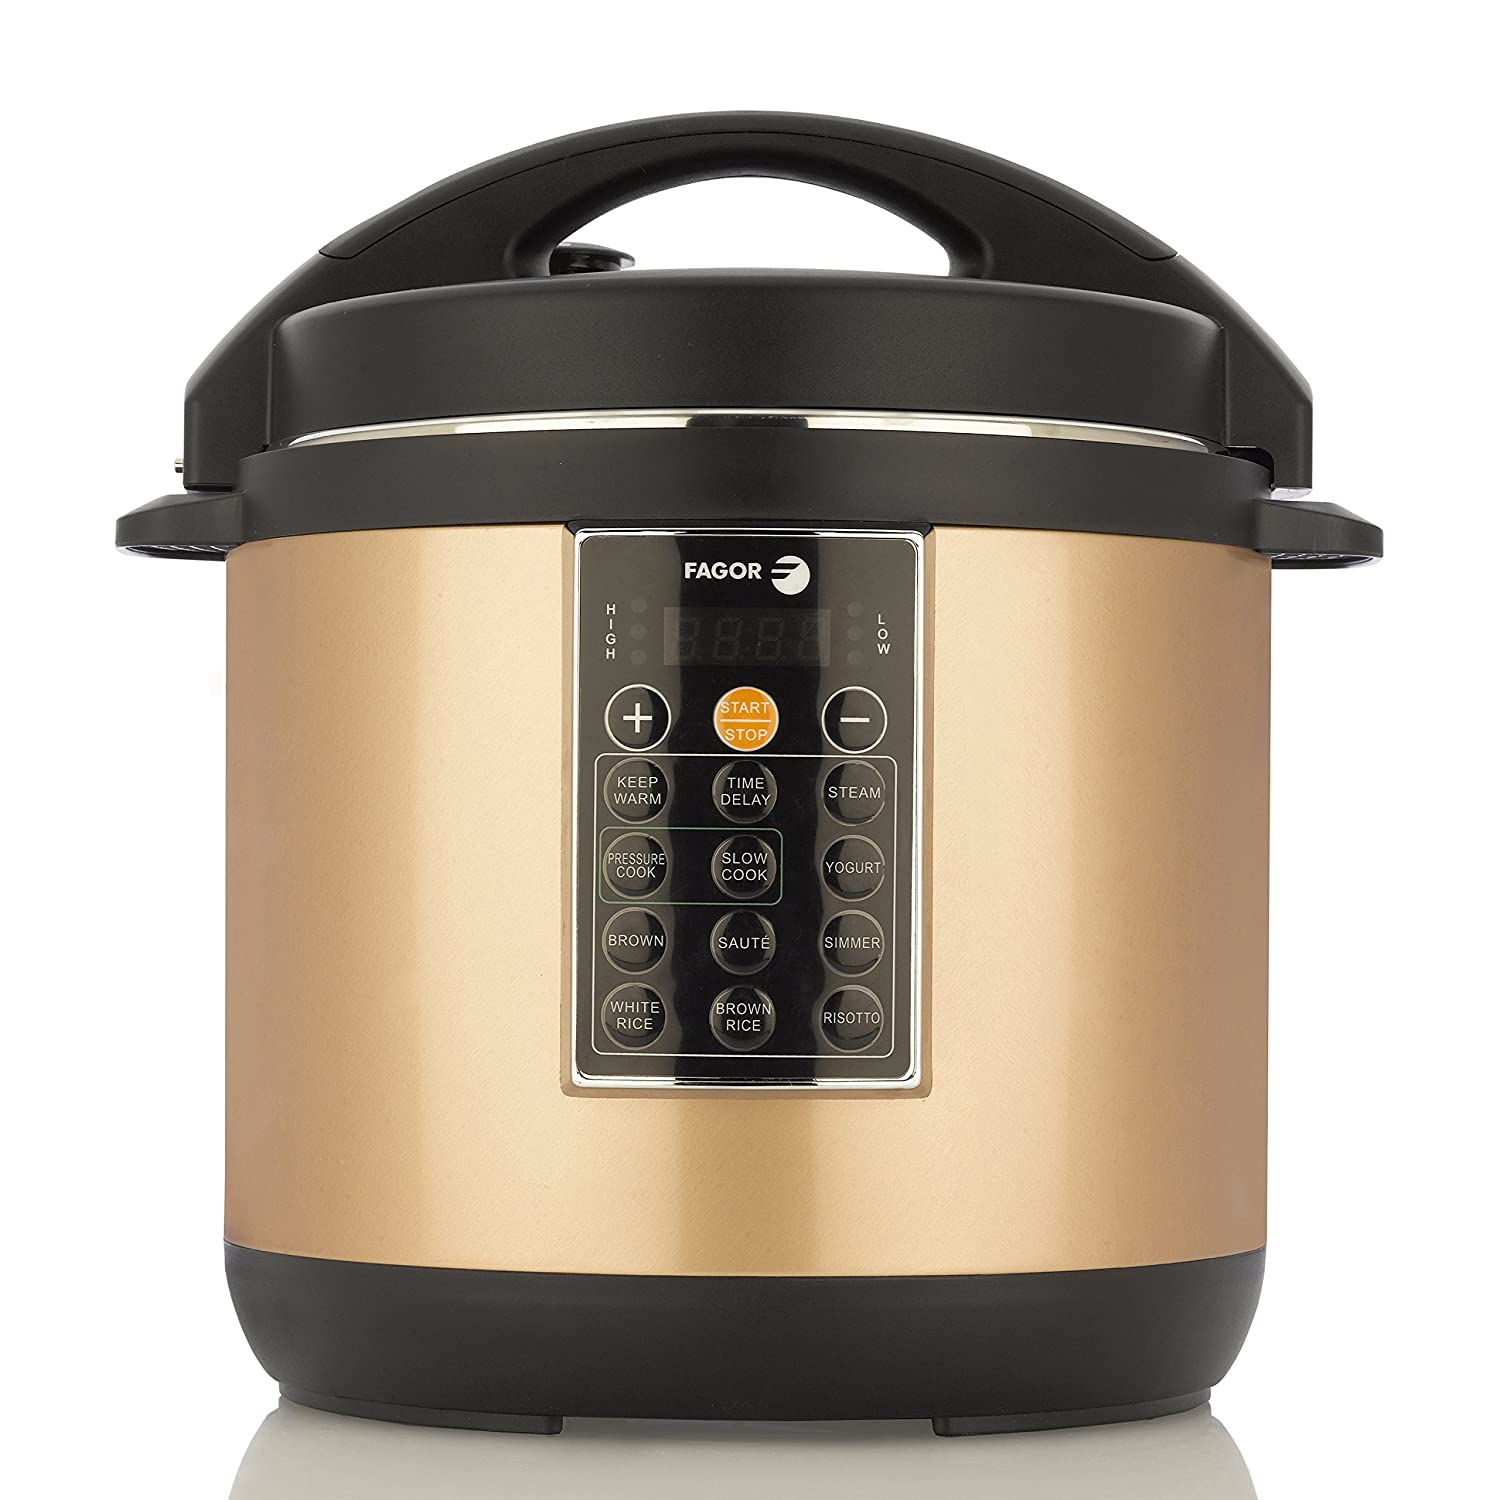 Amazon.com: Fagor LUX Multi-Cooker, 6 quart, Electric Pressure Cooker, Slow  Cooker, Rice Cooker, Yogurt Maker and more, Copper - 935010052: Kitchen &  Dining